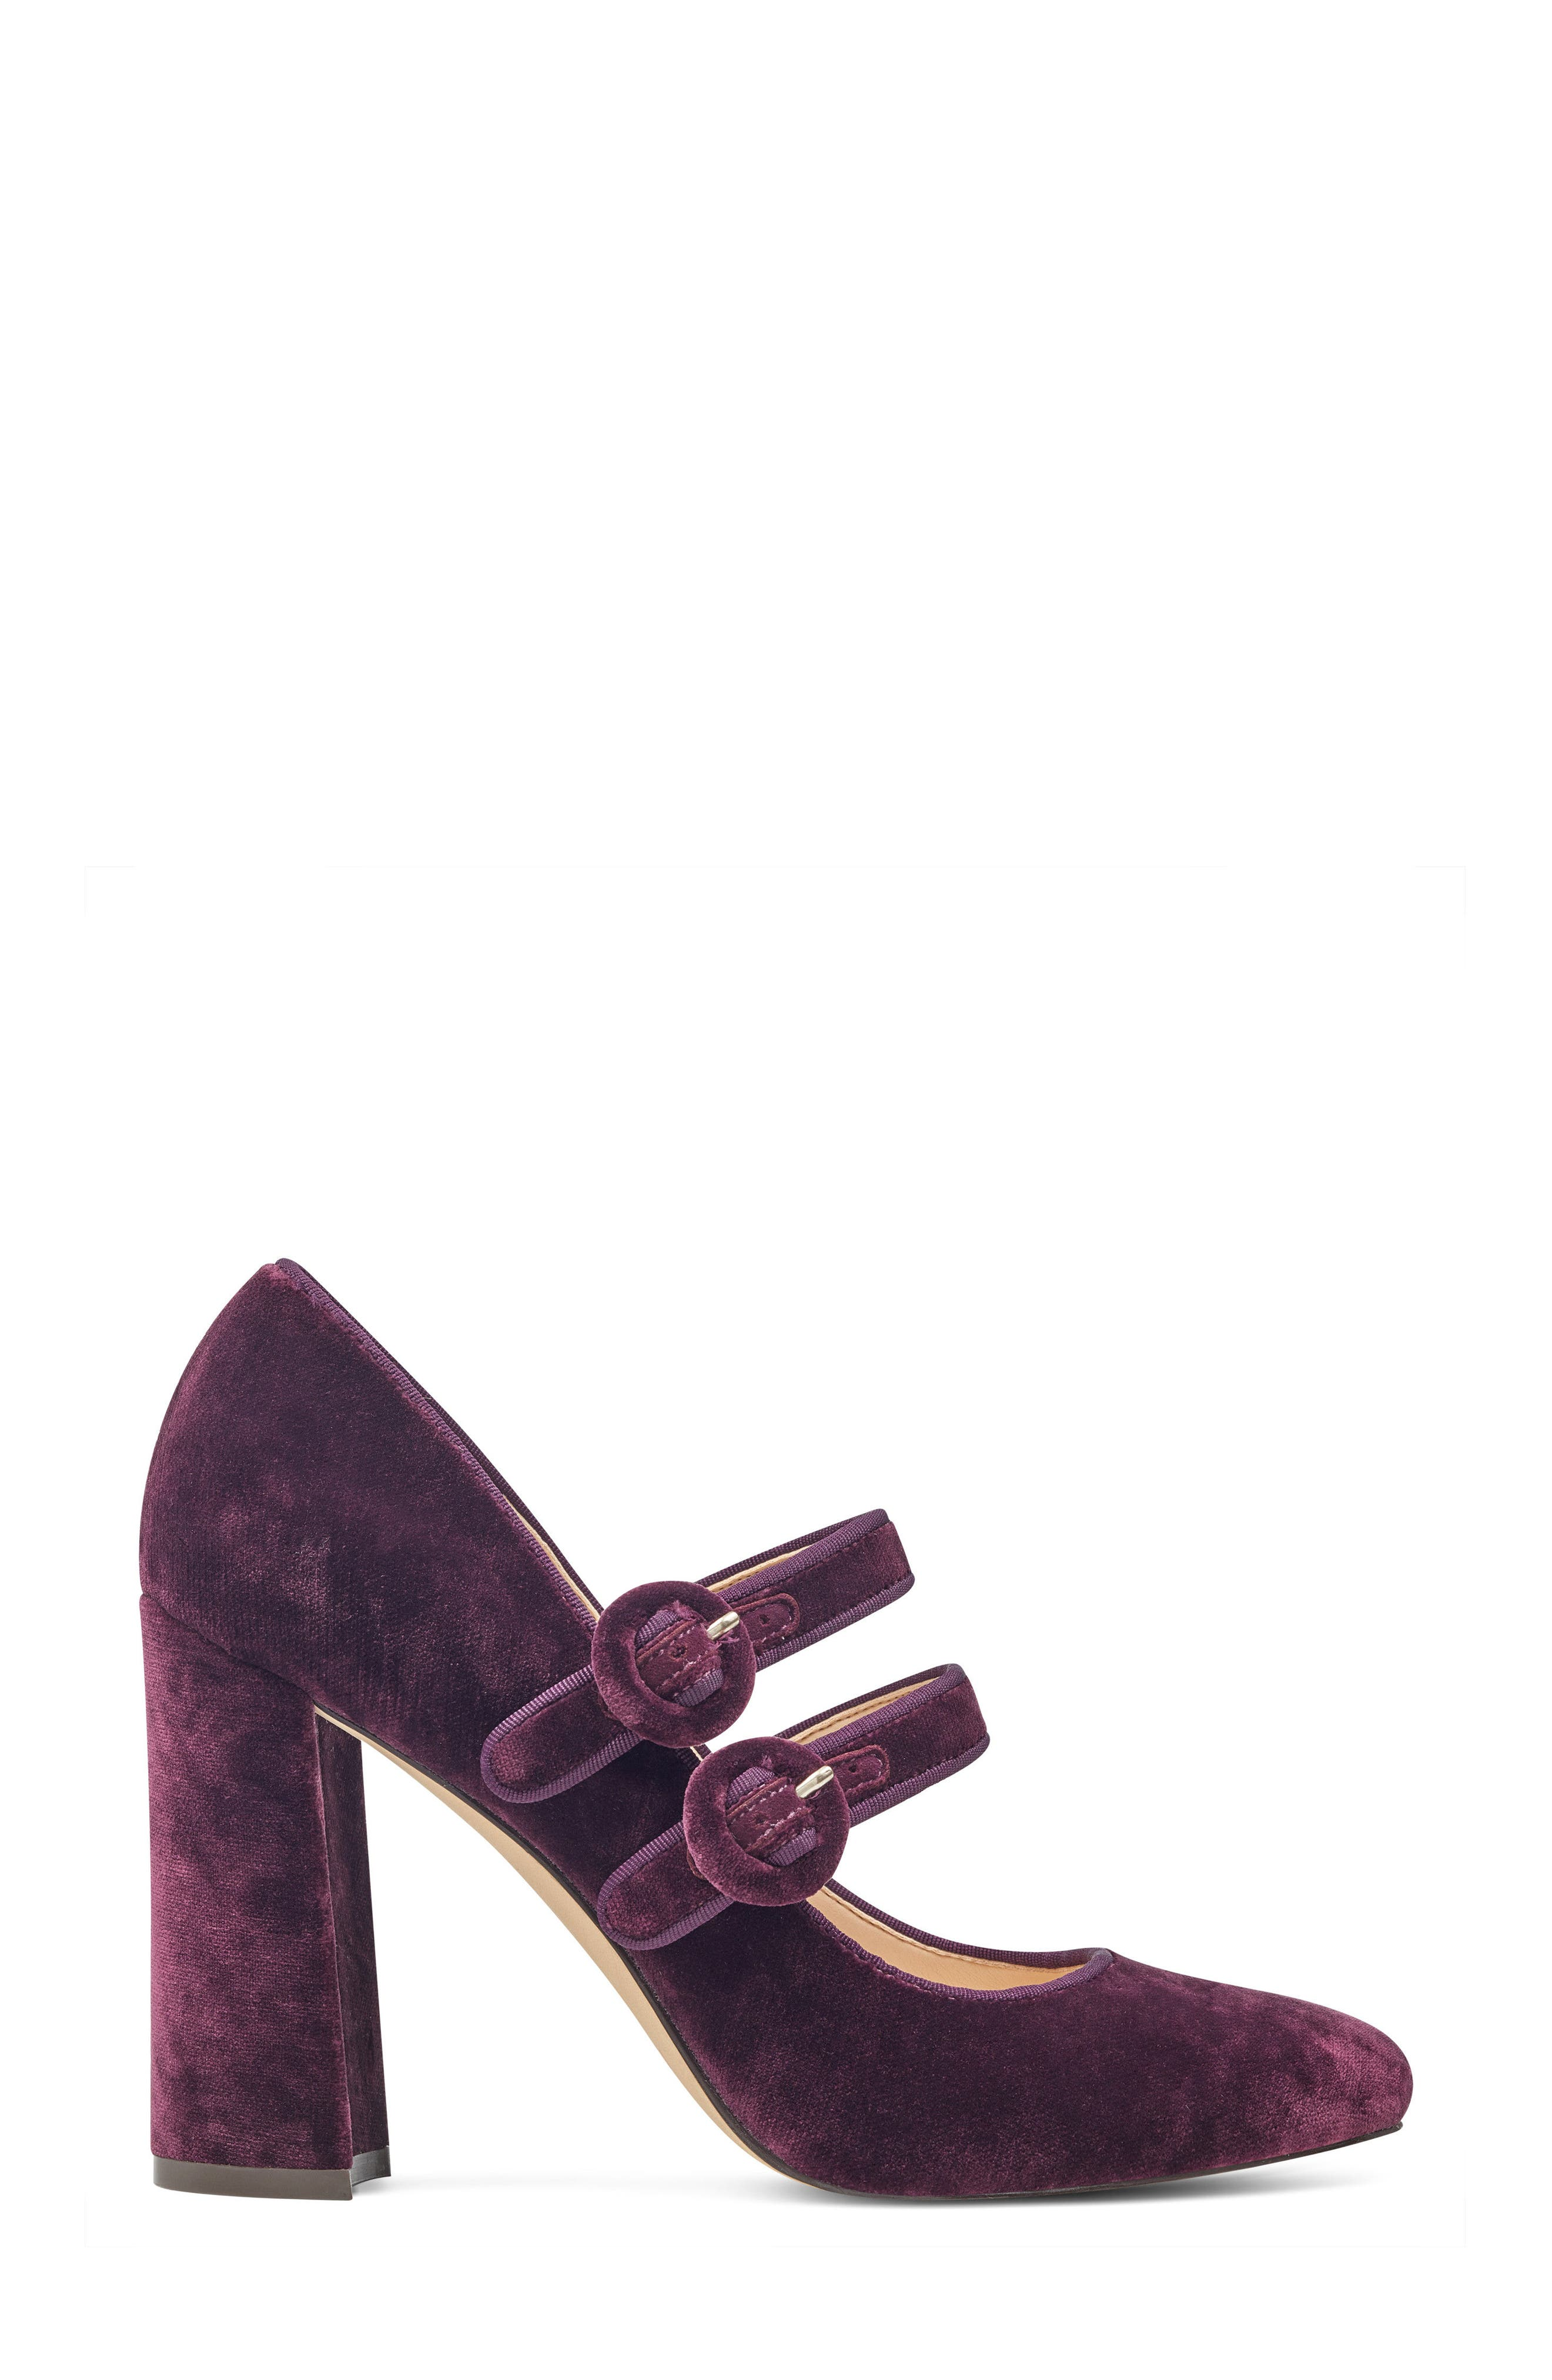 Dabney Double Strap Mary Jane Pump,                             Alternate thumbnail 12, color,